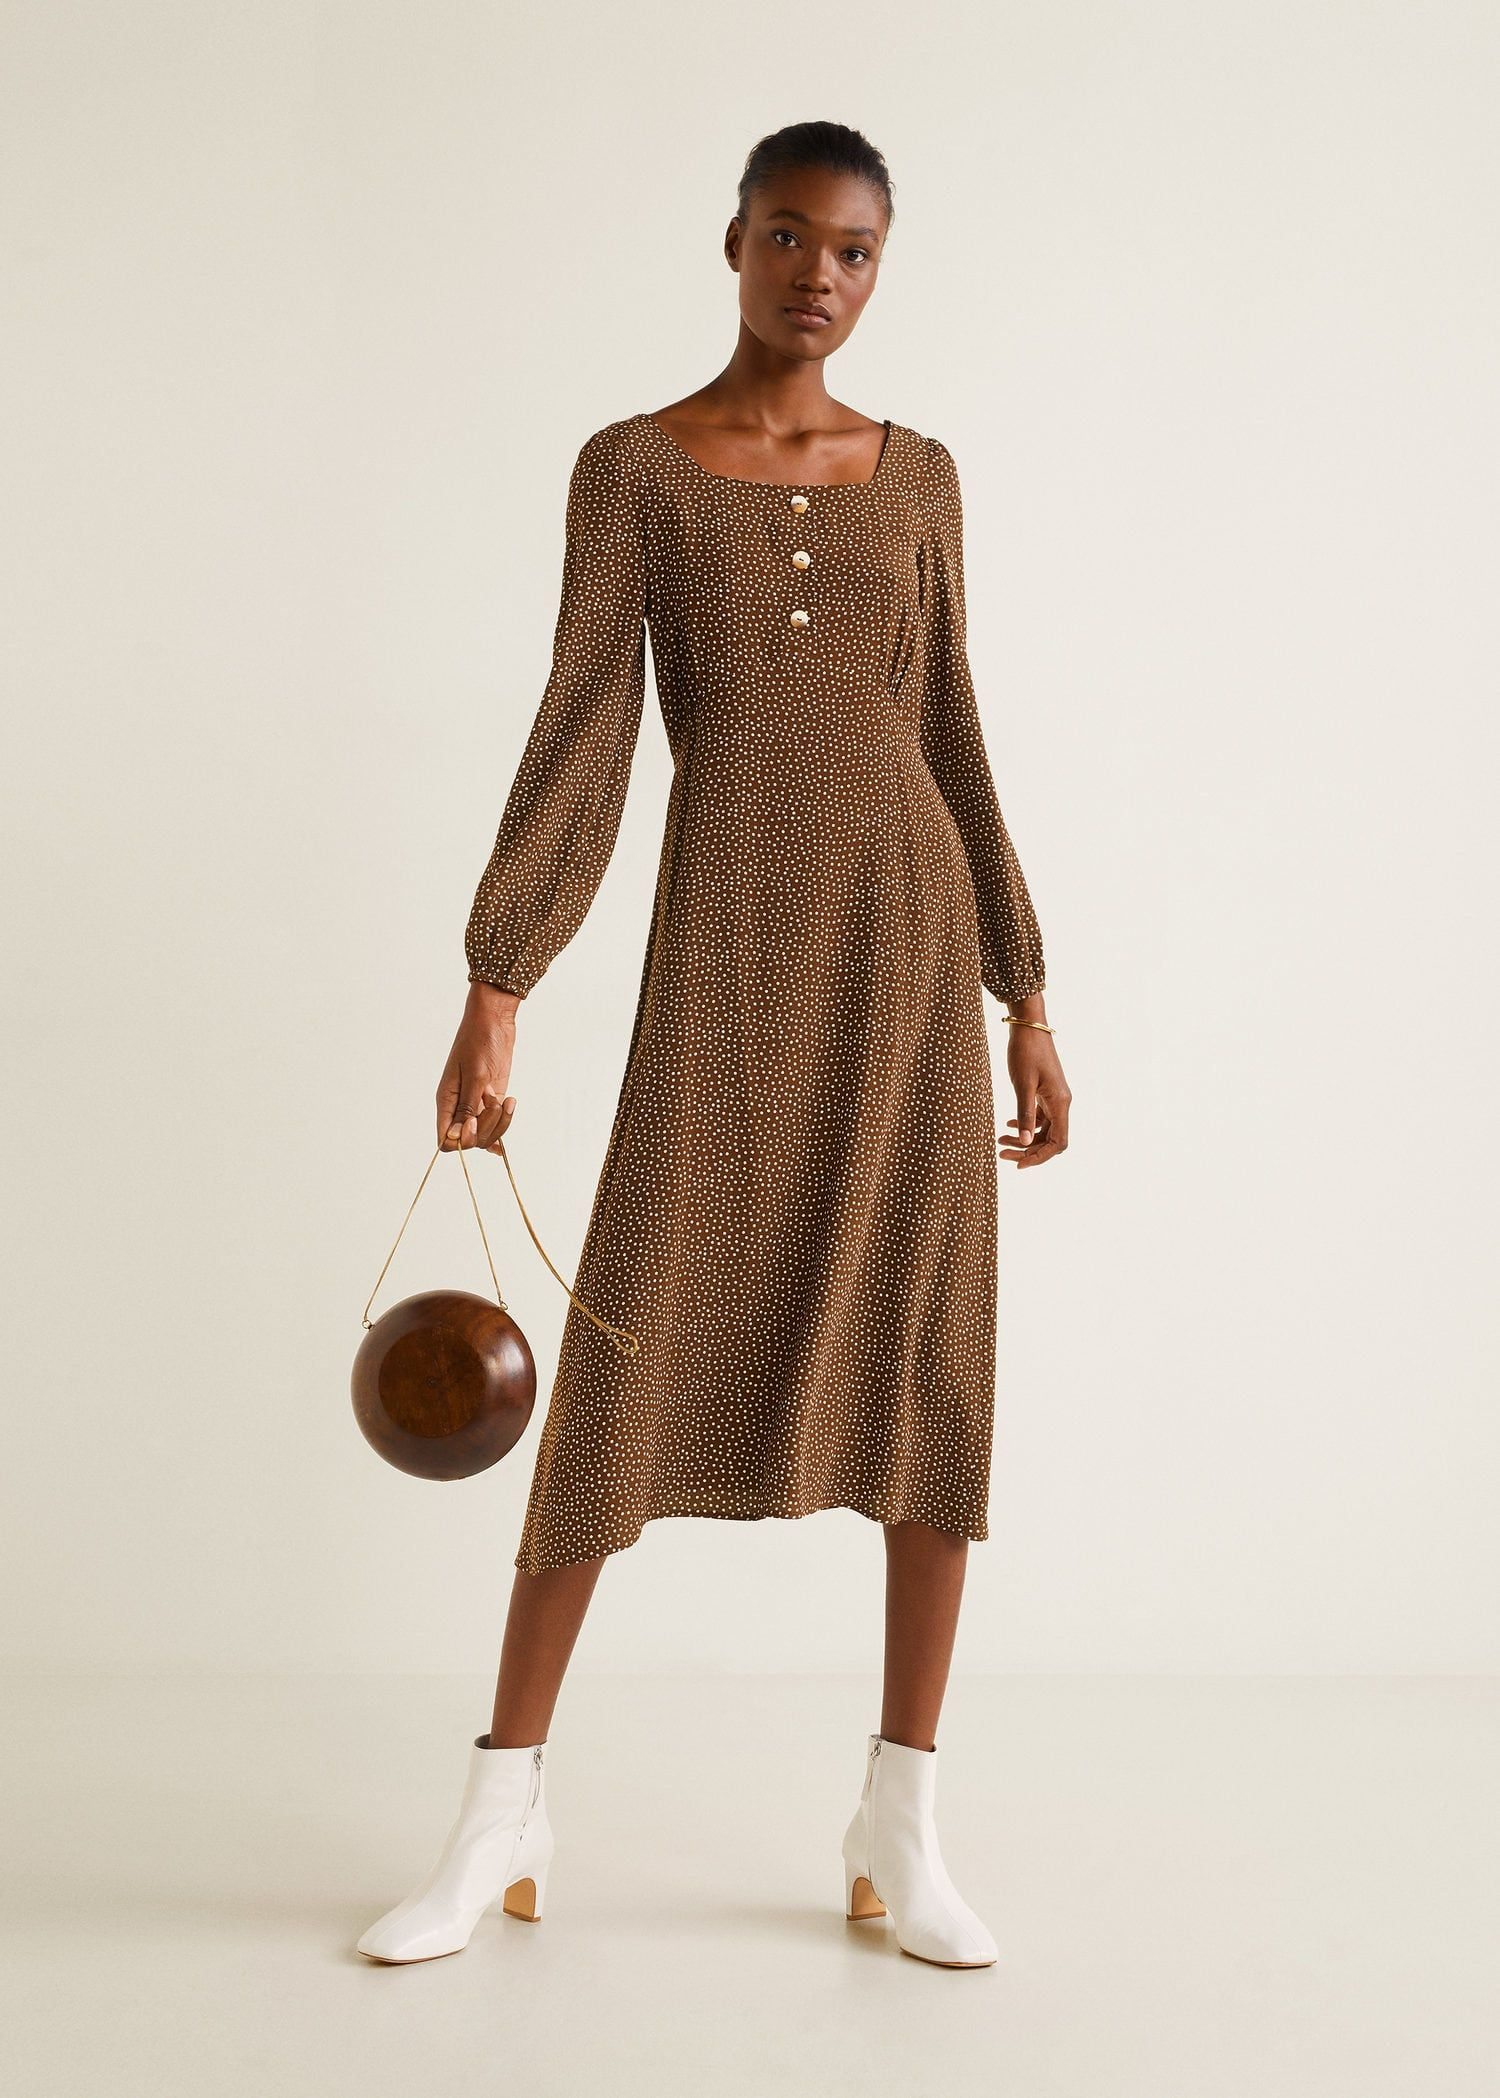 a9af870ad0440 Polka-dot print midi dress in chocolate brown featuring long sleeves and a  flattering straight cut.